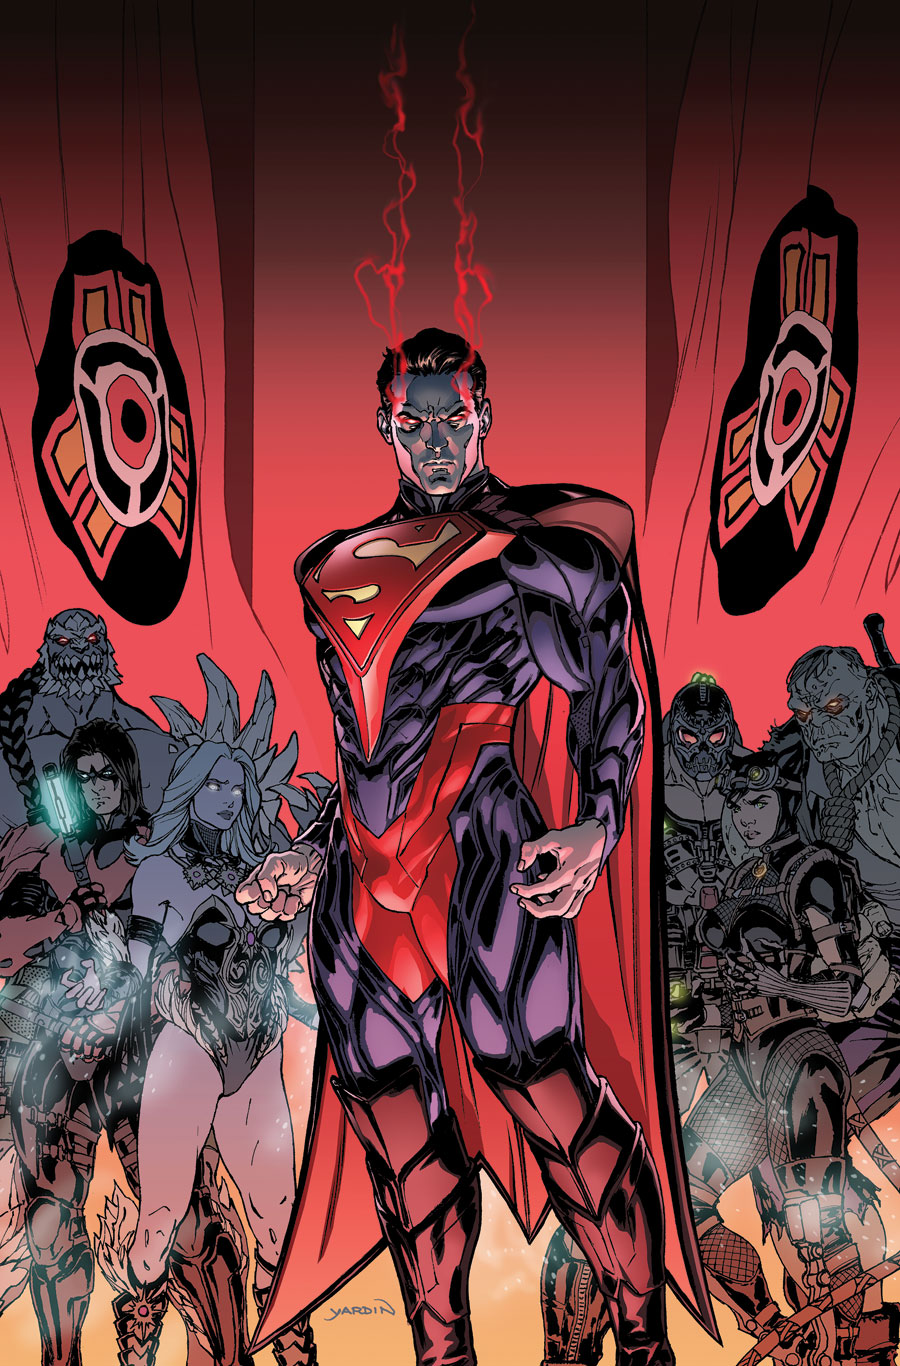 Injustice: Gods Among Us: Year Five #1 from DC Comics ...